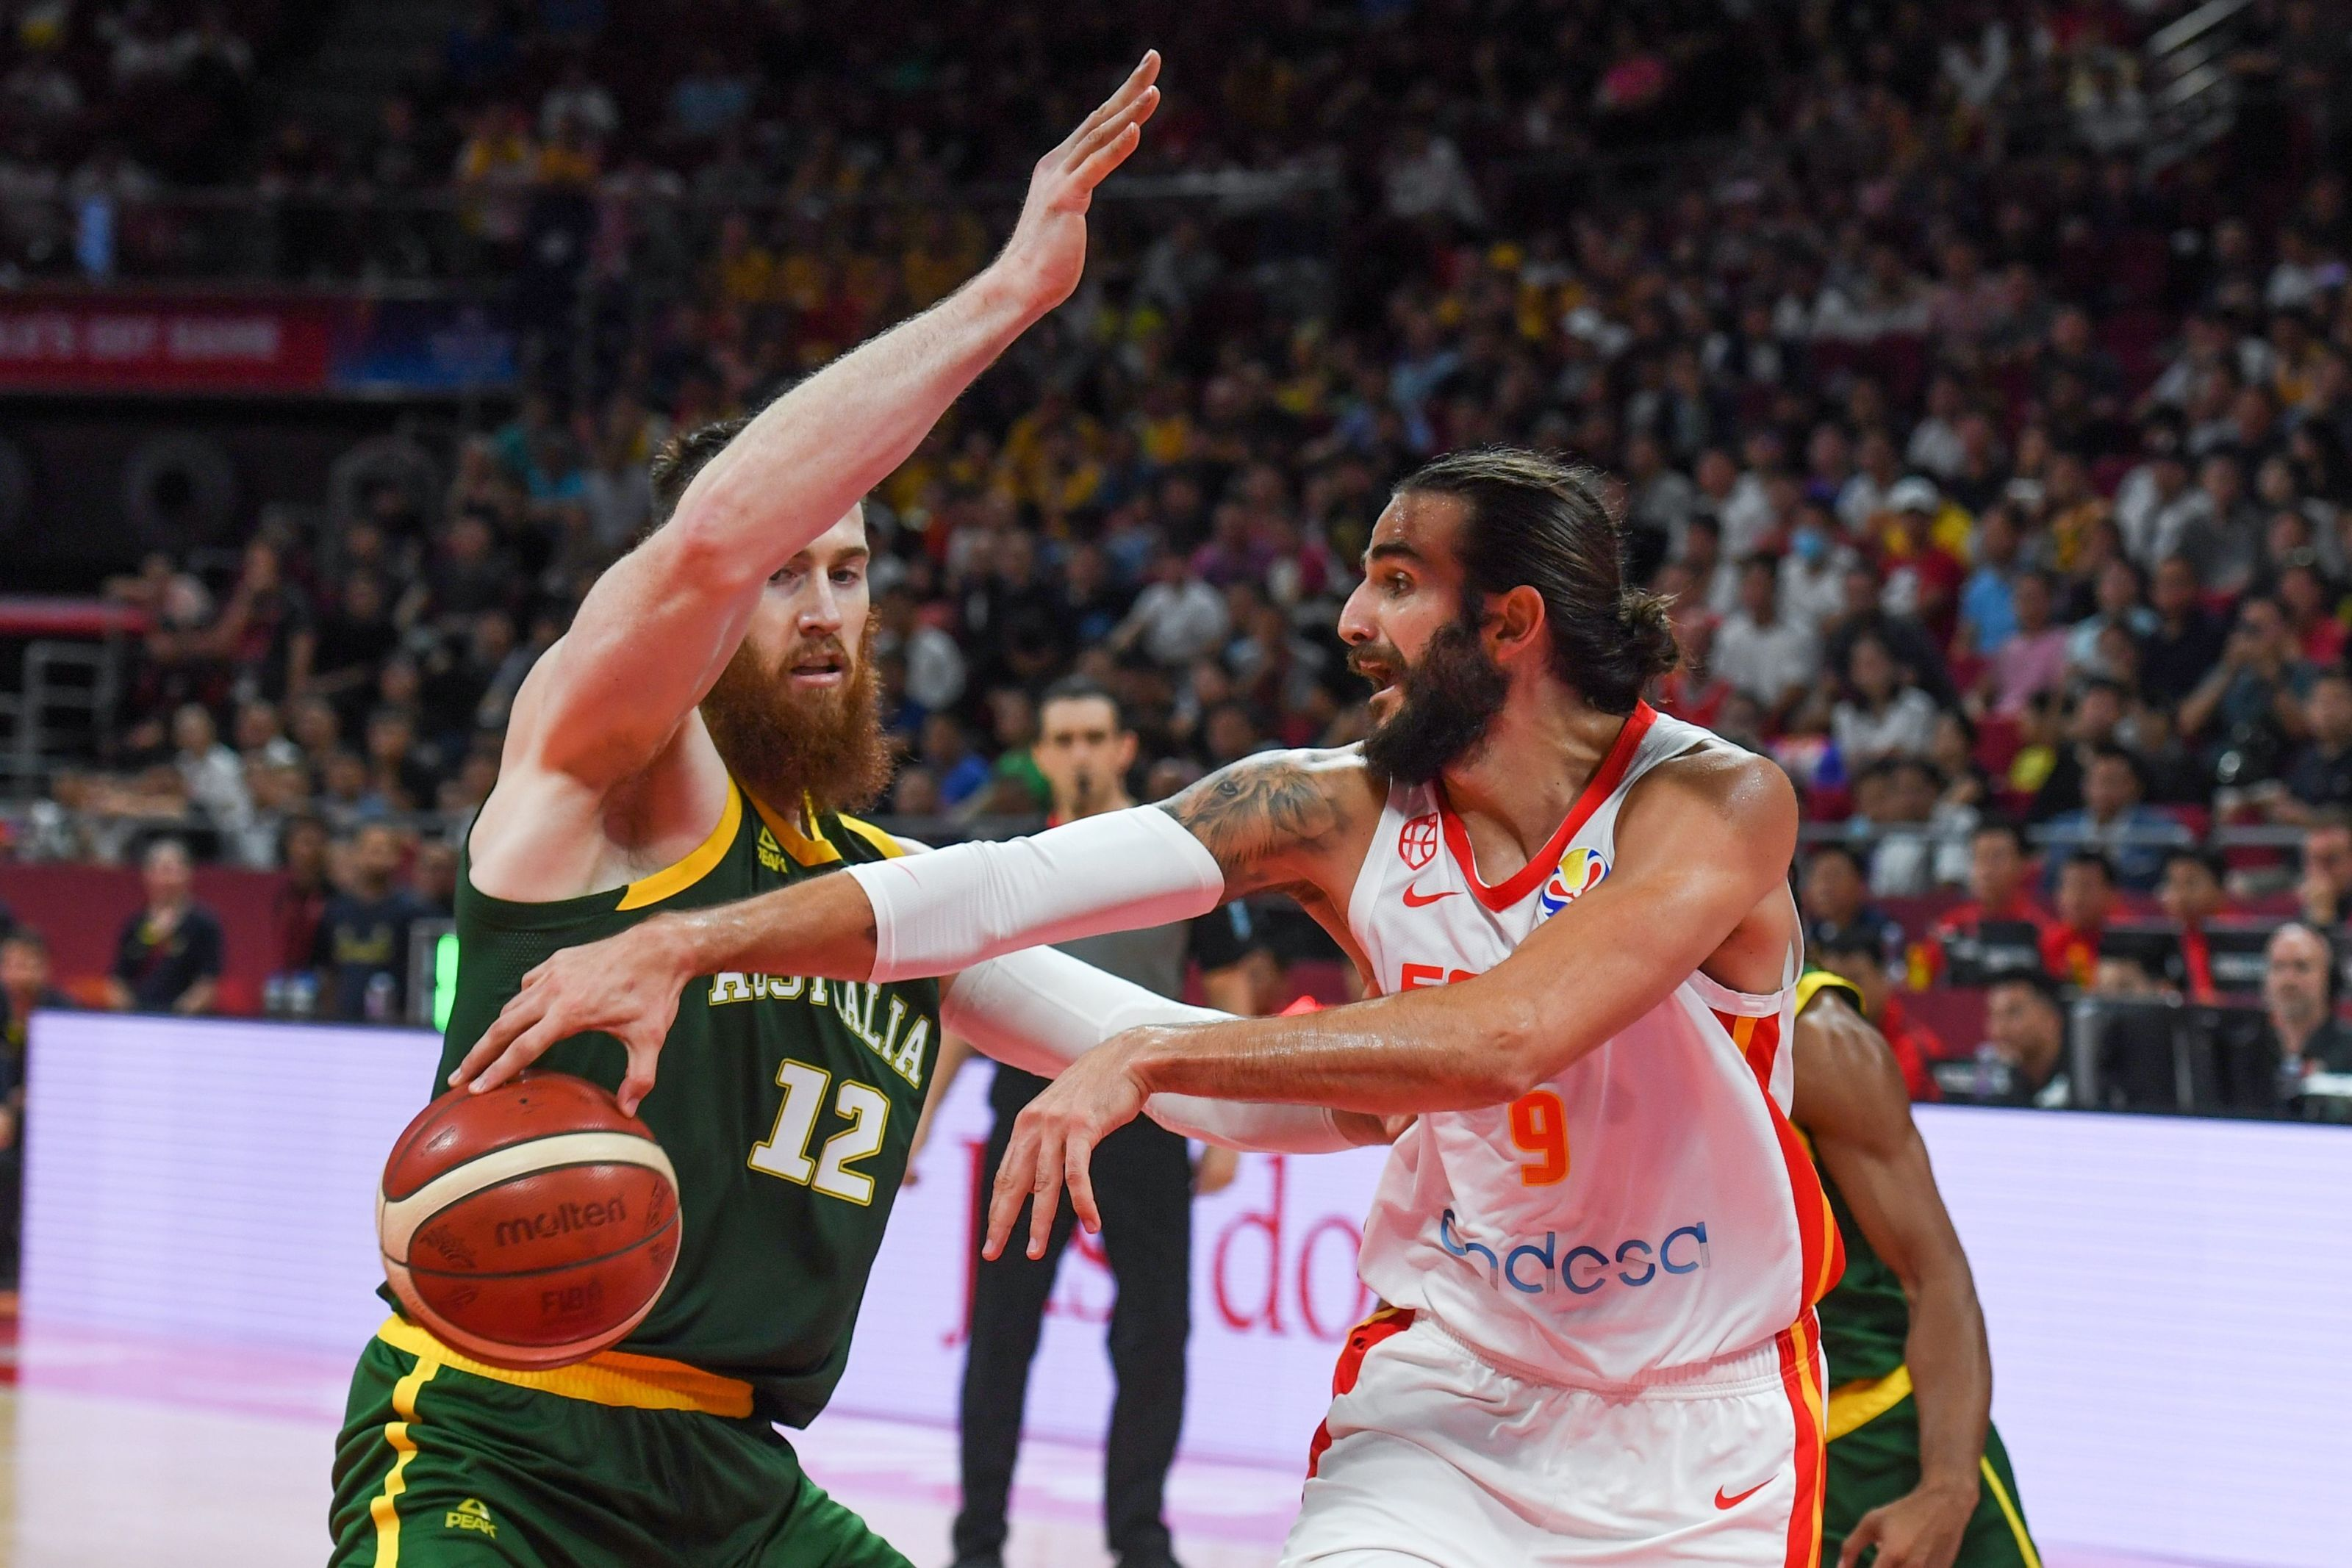 Phoenix Suns newcomers clash at the FIBA World Cup